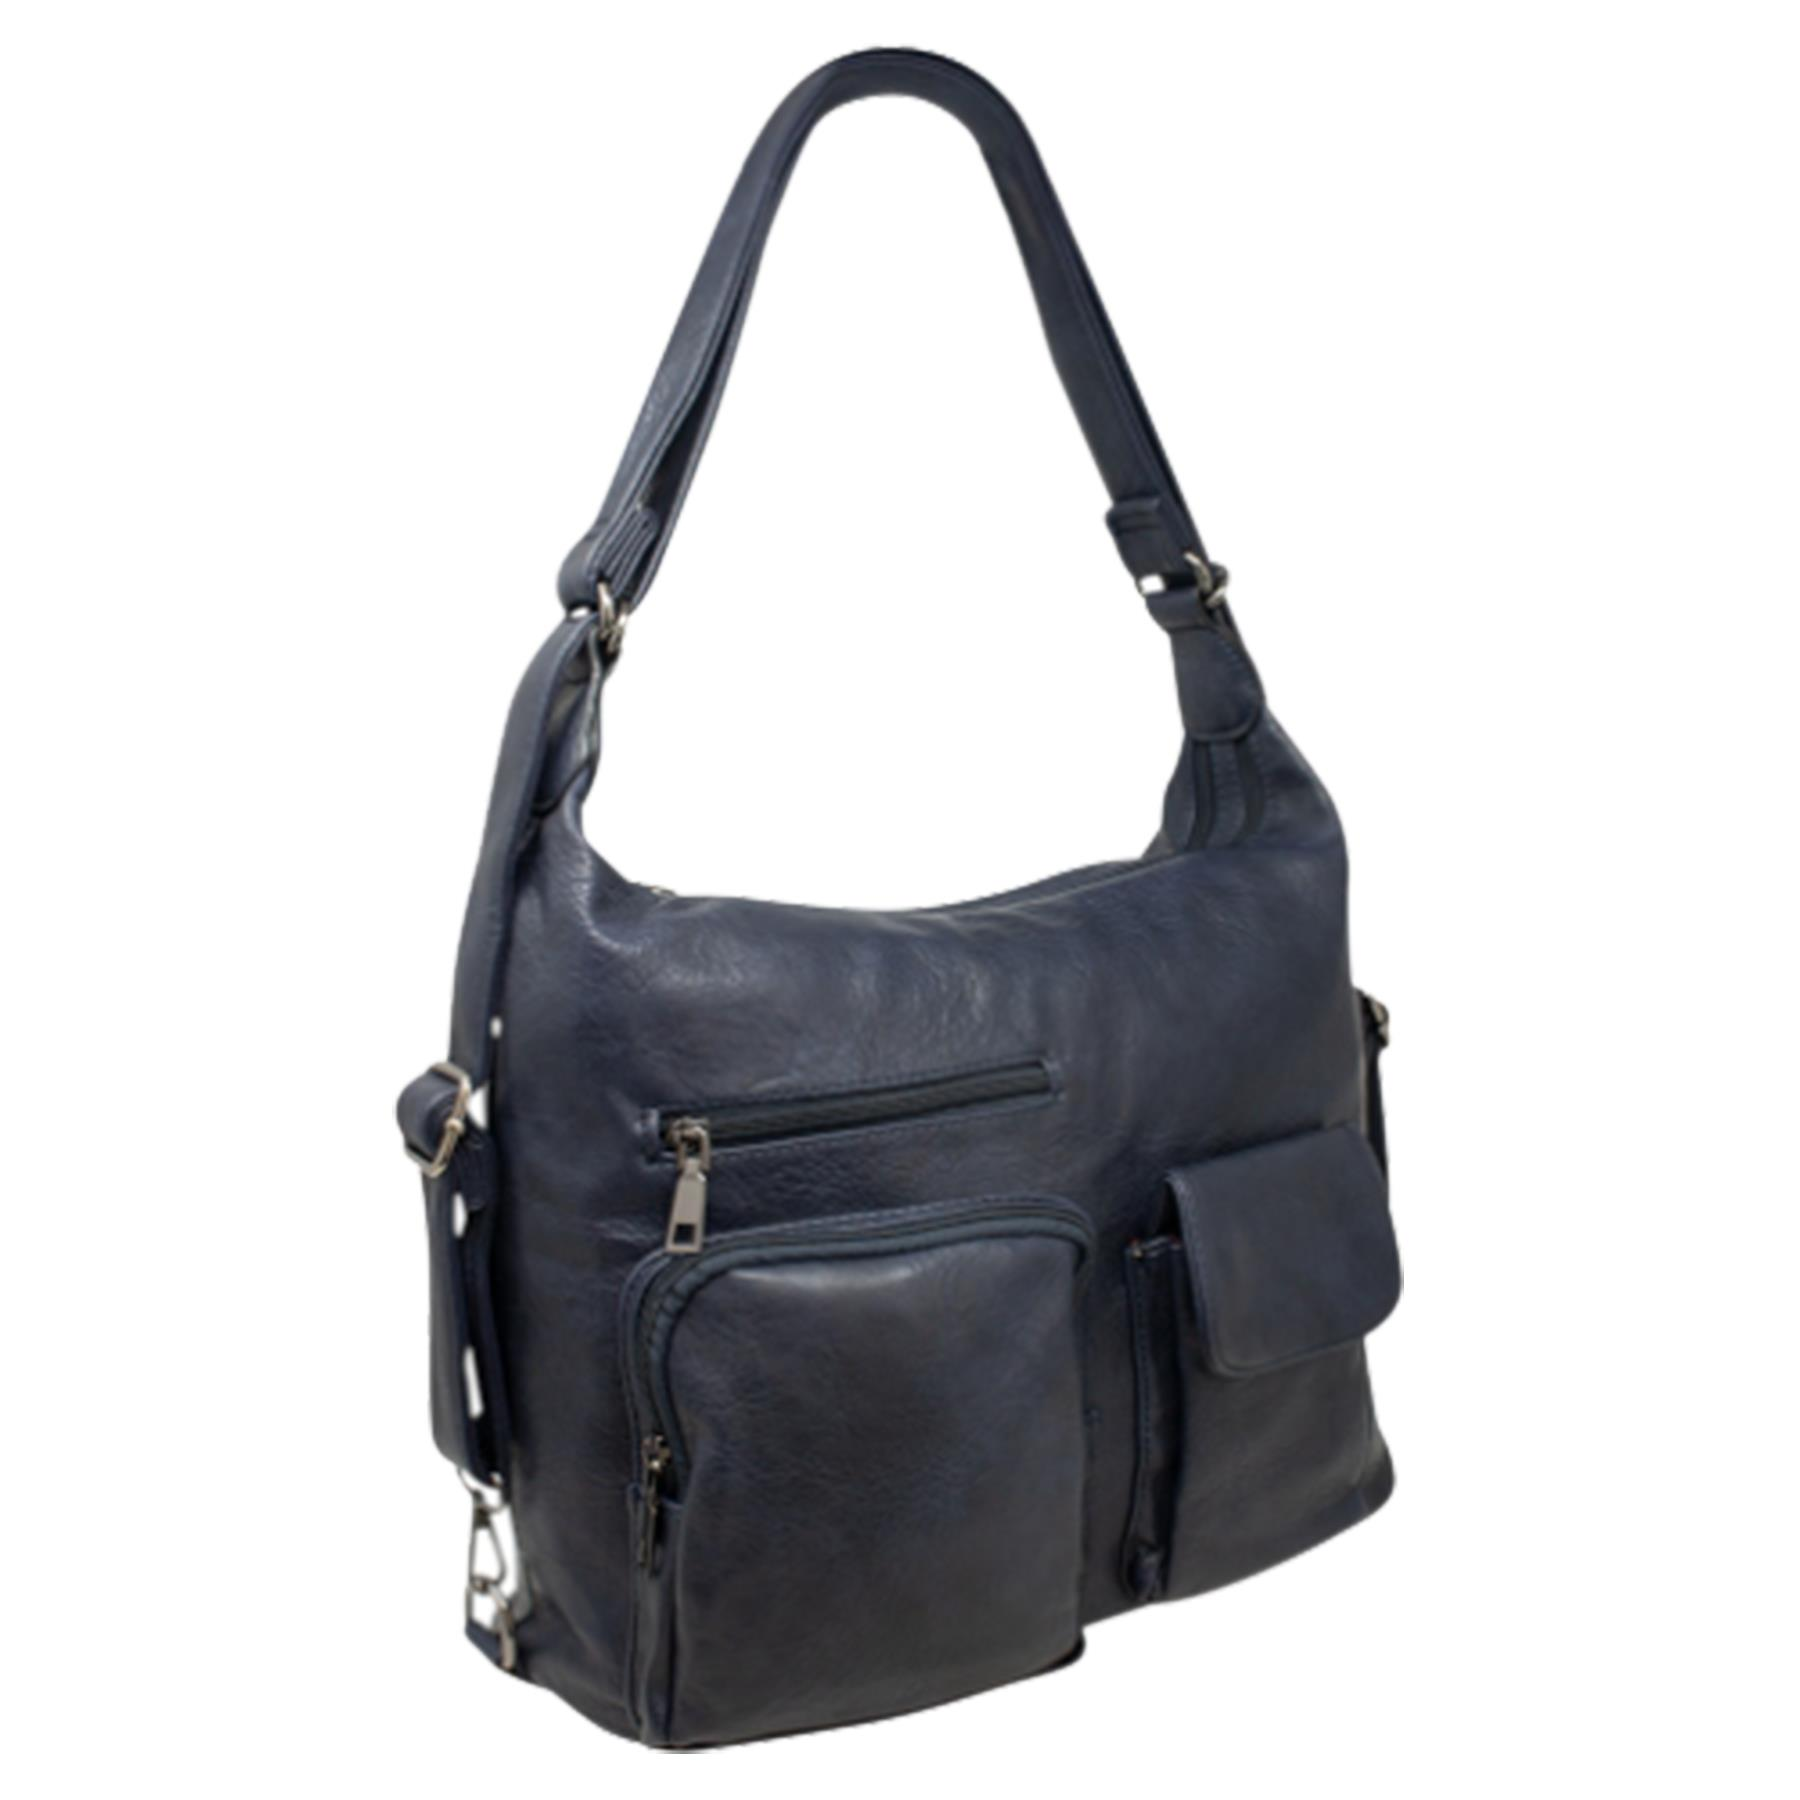 New-Women-s-Men-s-Faux-Leather-Multi-Purpose-Crossbody-Messenger-Bag thumbnail 11